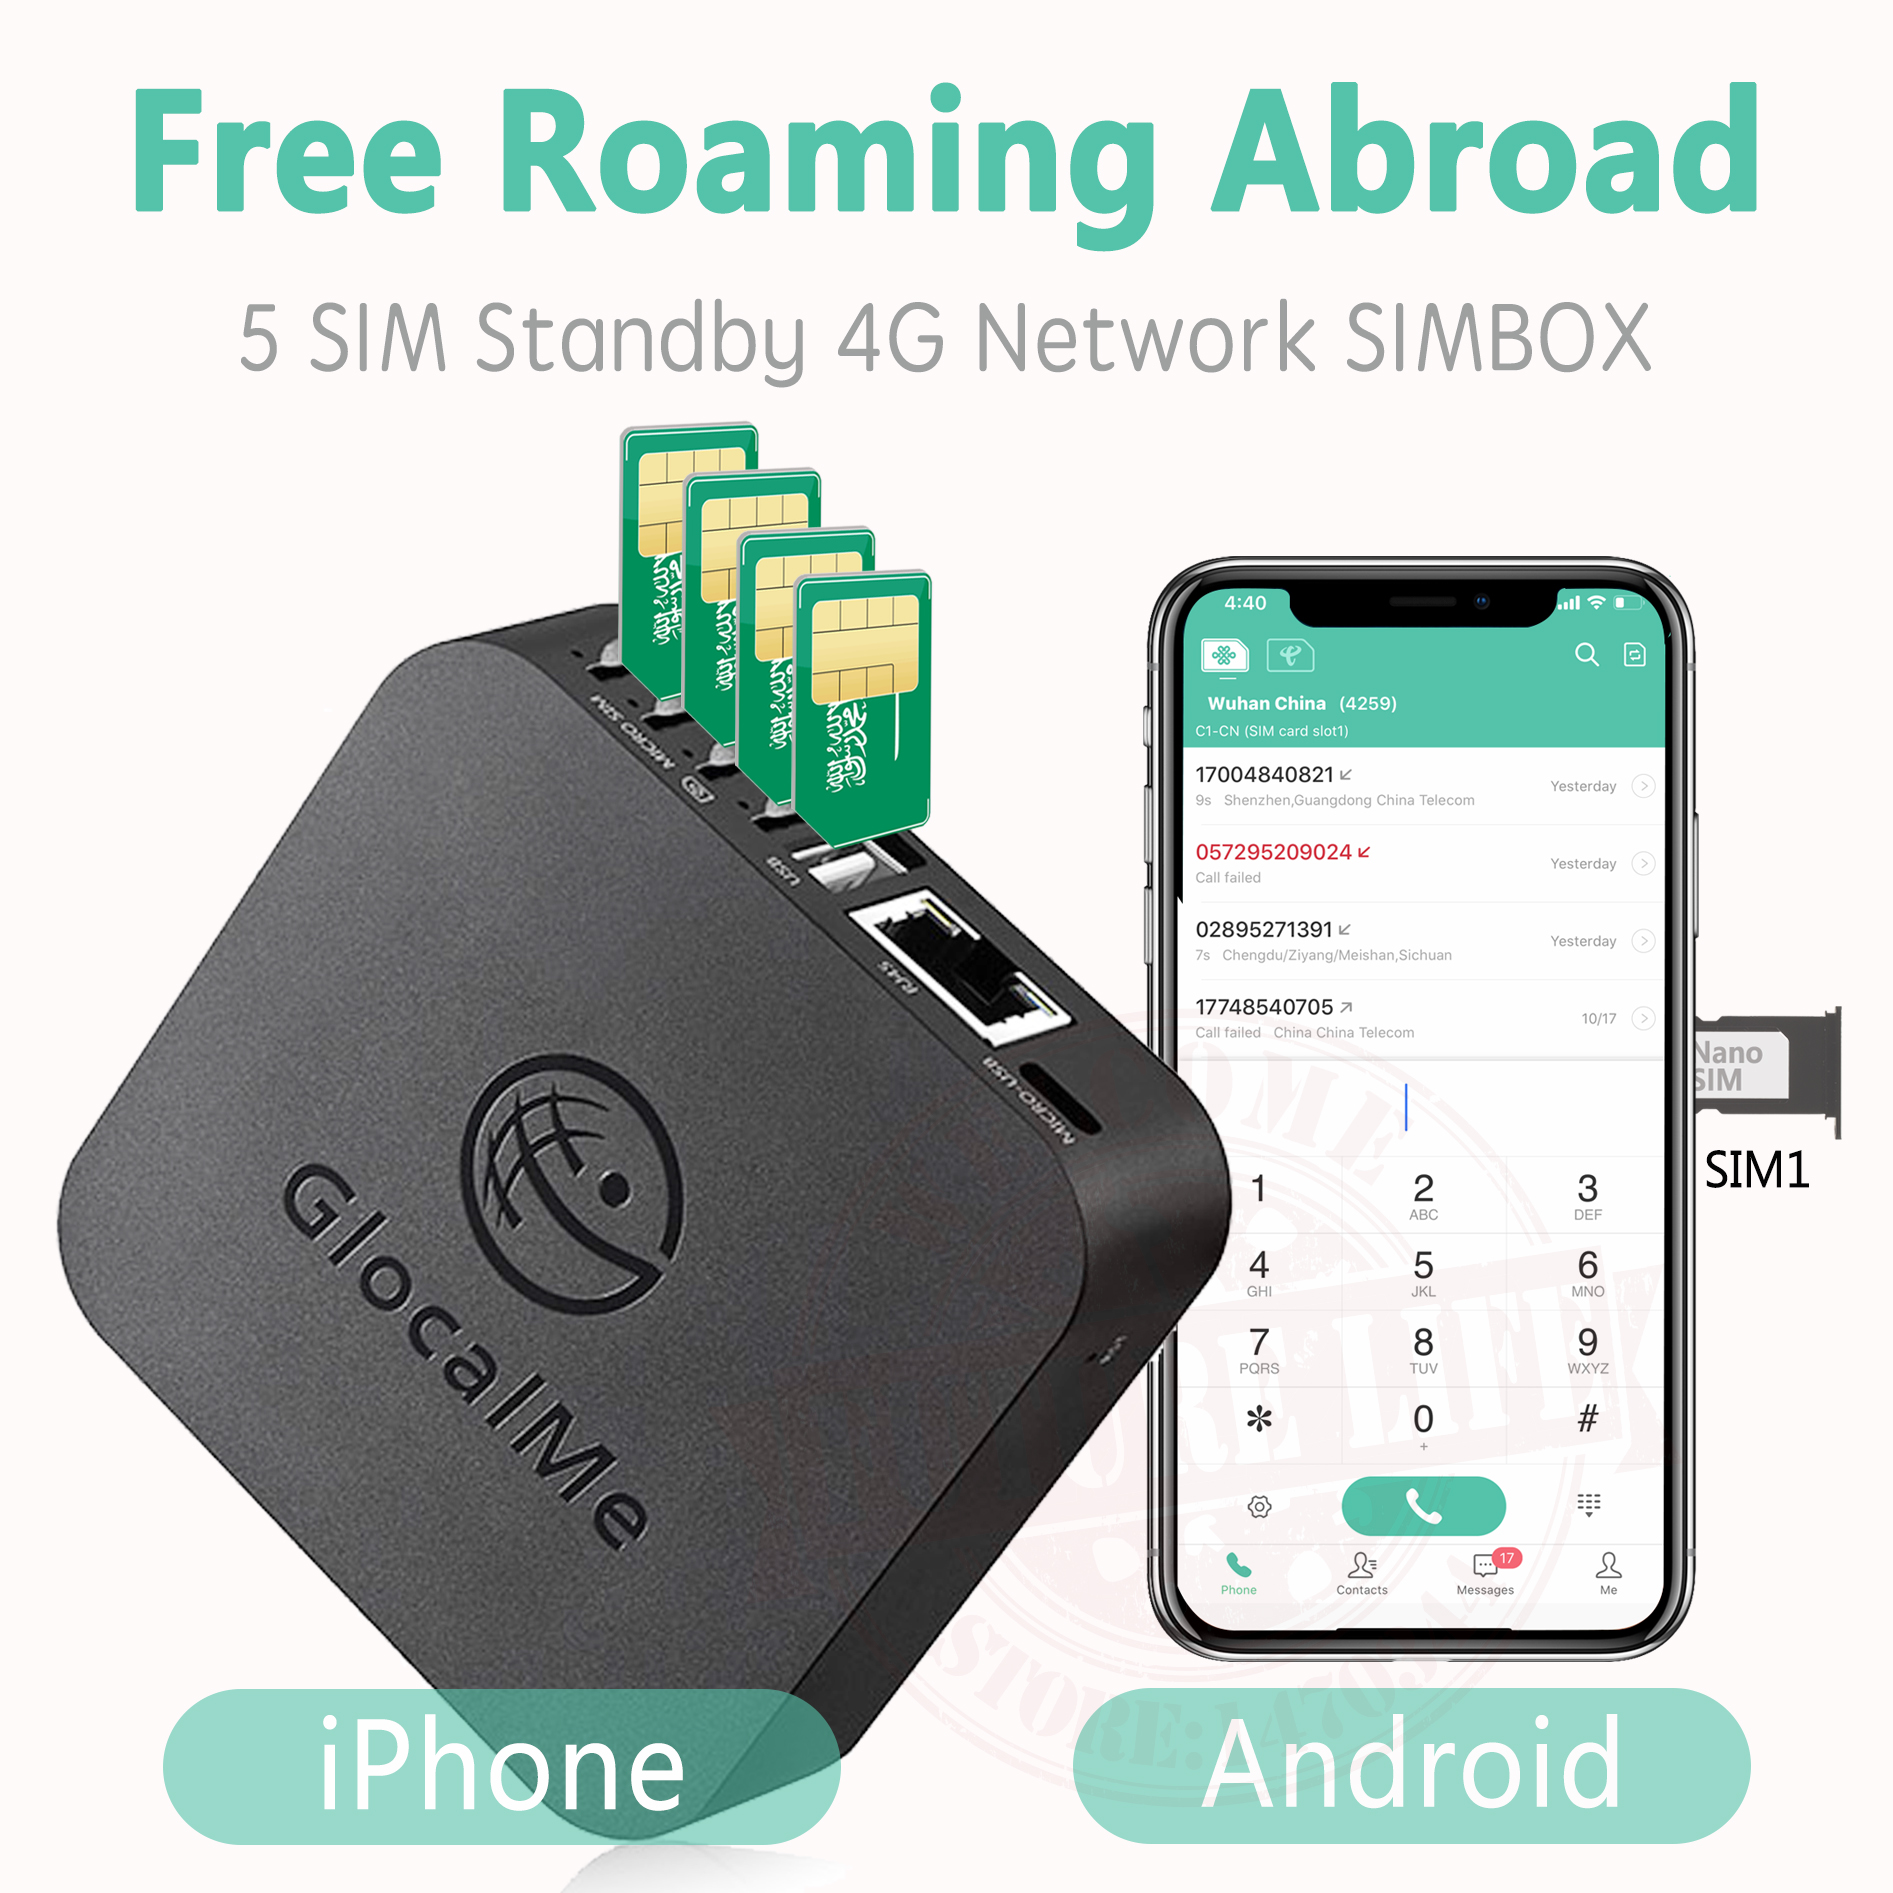 Glocalme Call Multi SIM Dual Standby No Roaming Abroad 4G SIMBOX For IOS & Android  No Need Carry WiFi / Data To Make Call &SMS